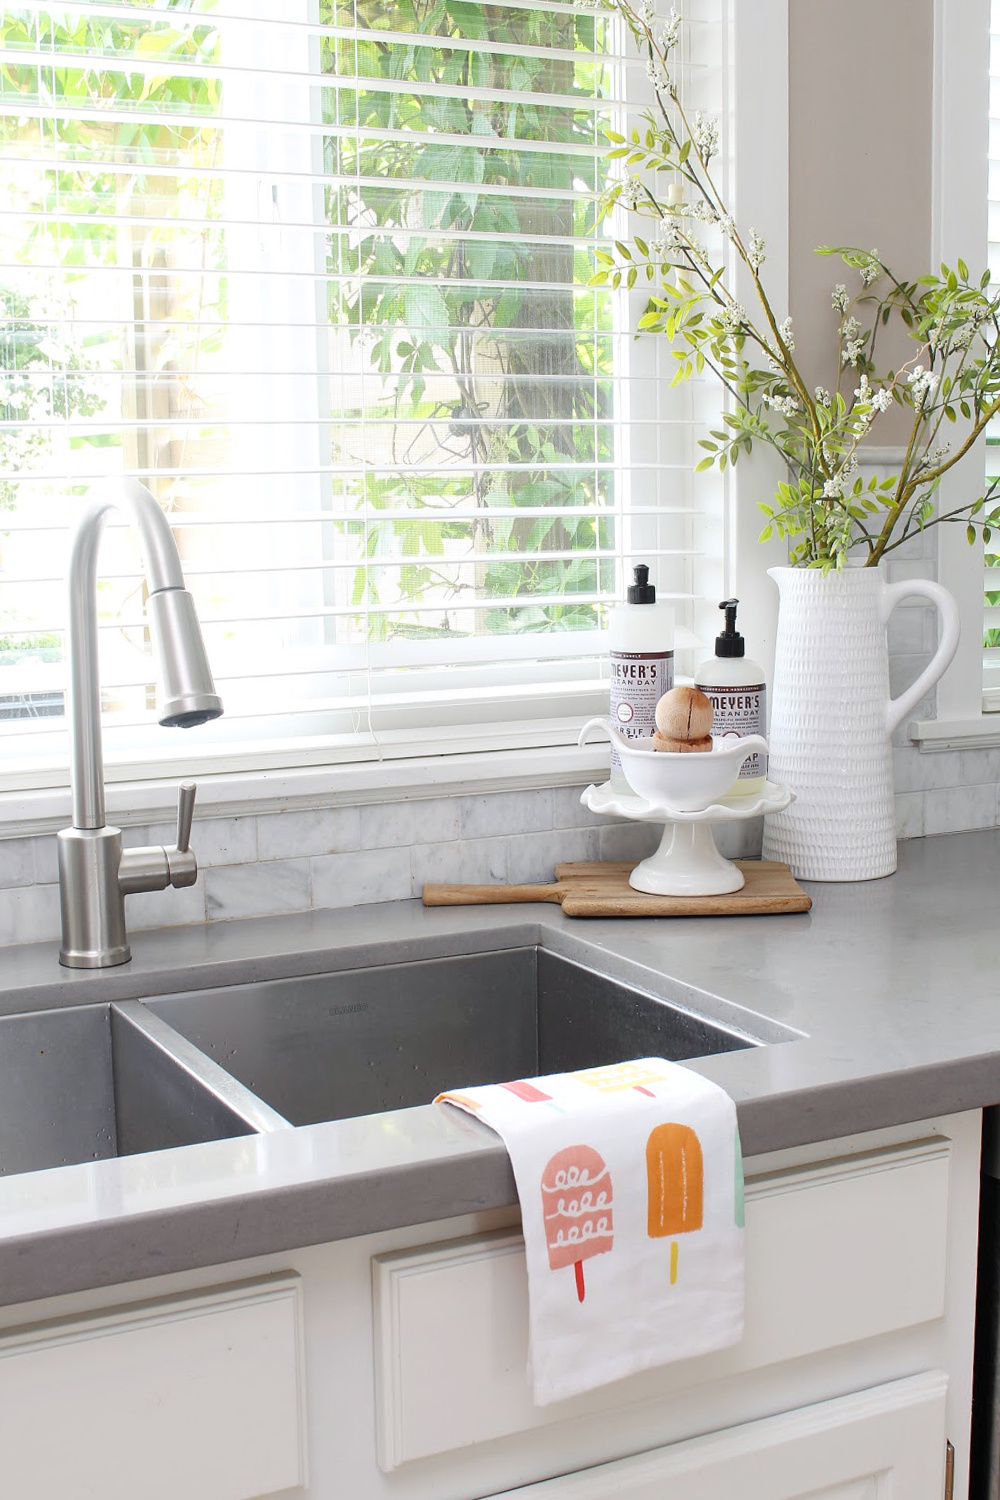 Kitchen sink decorated for summer with popsicle kitchen towel and cake stand.